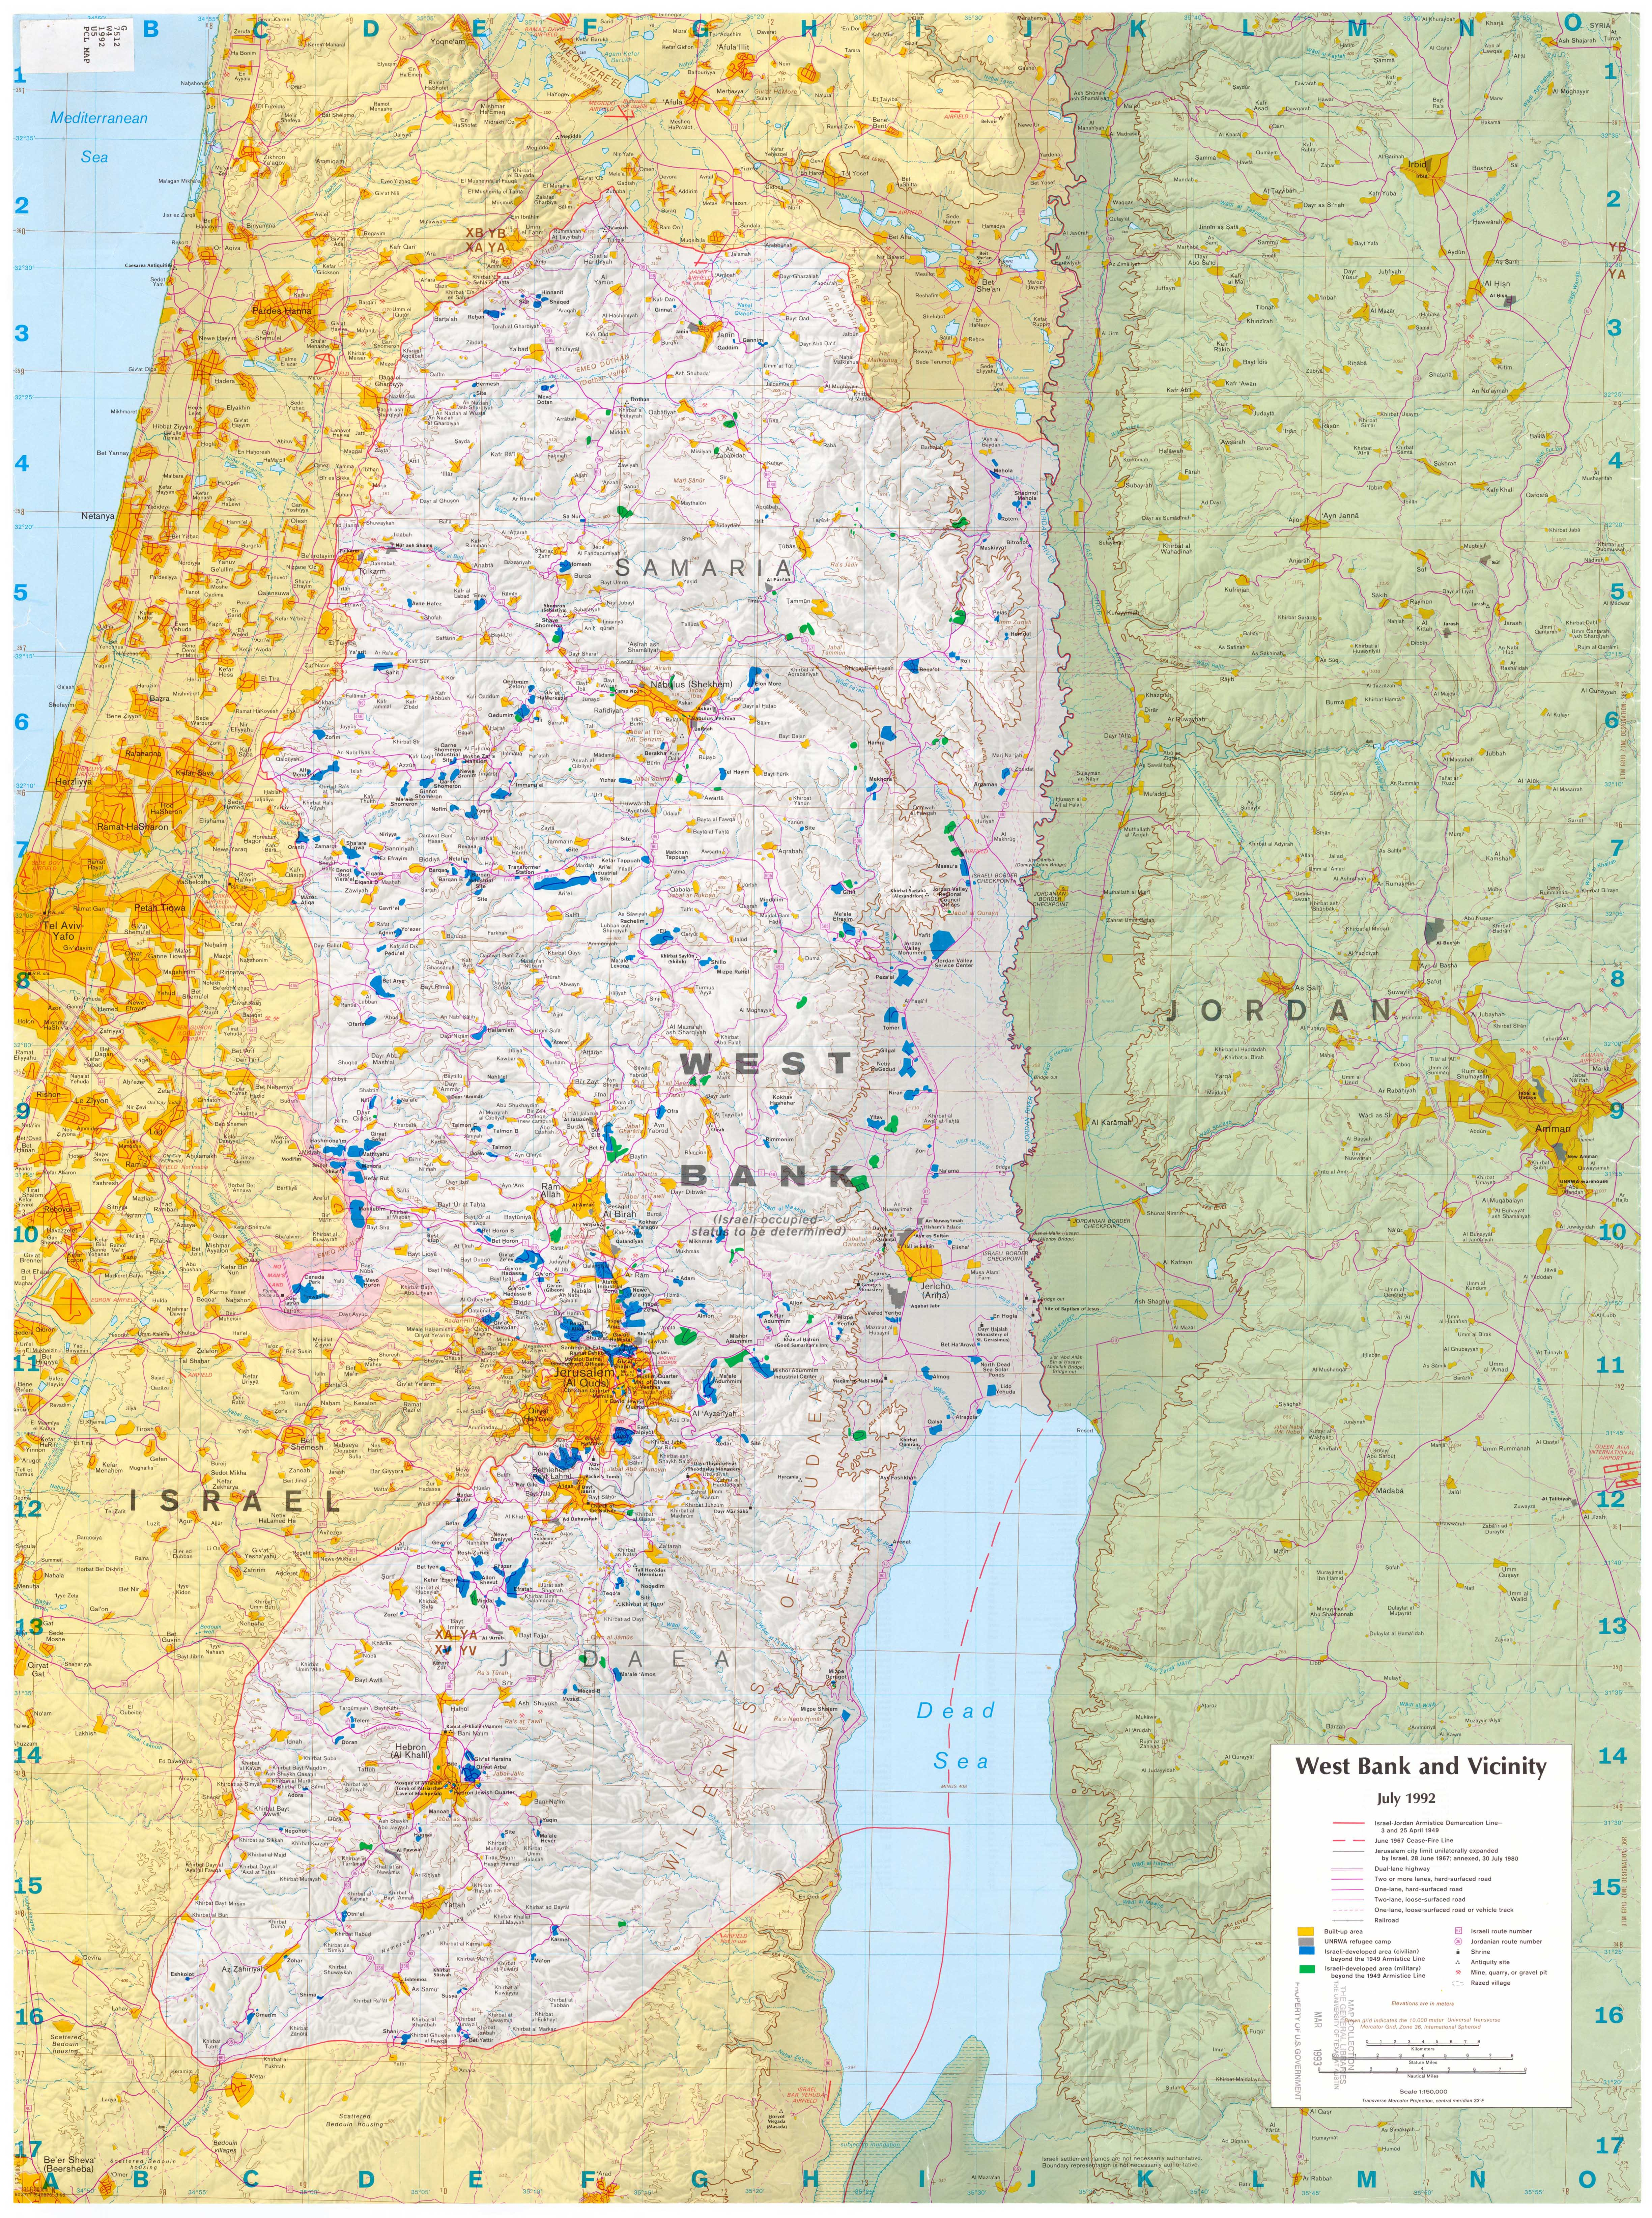 Download free israel maps.